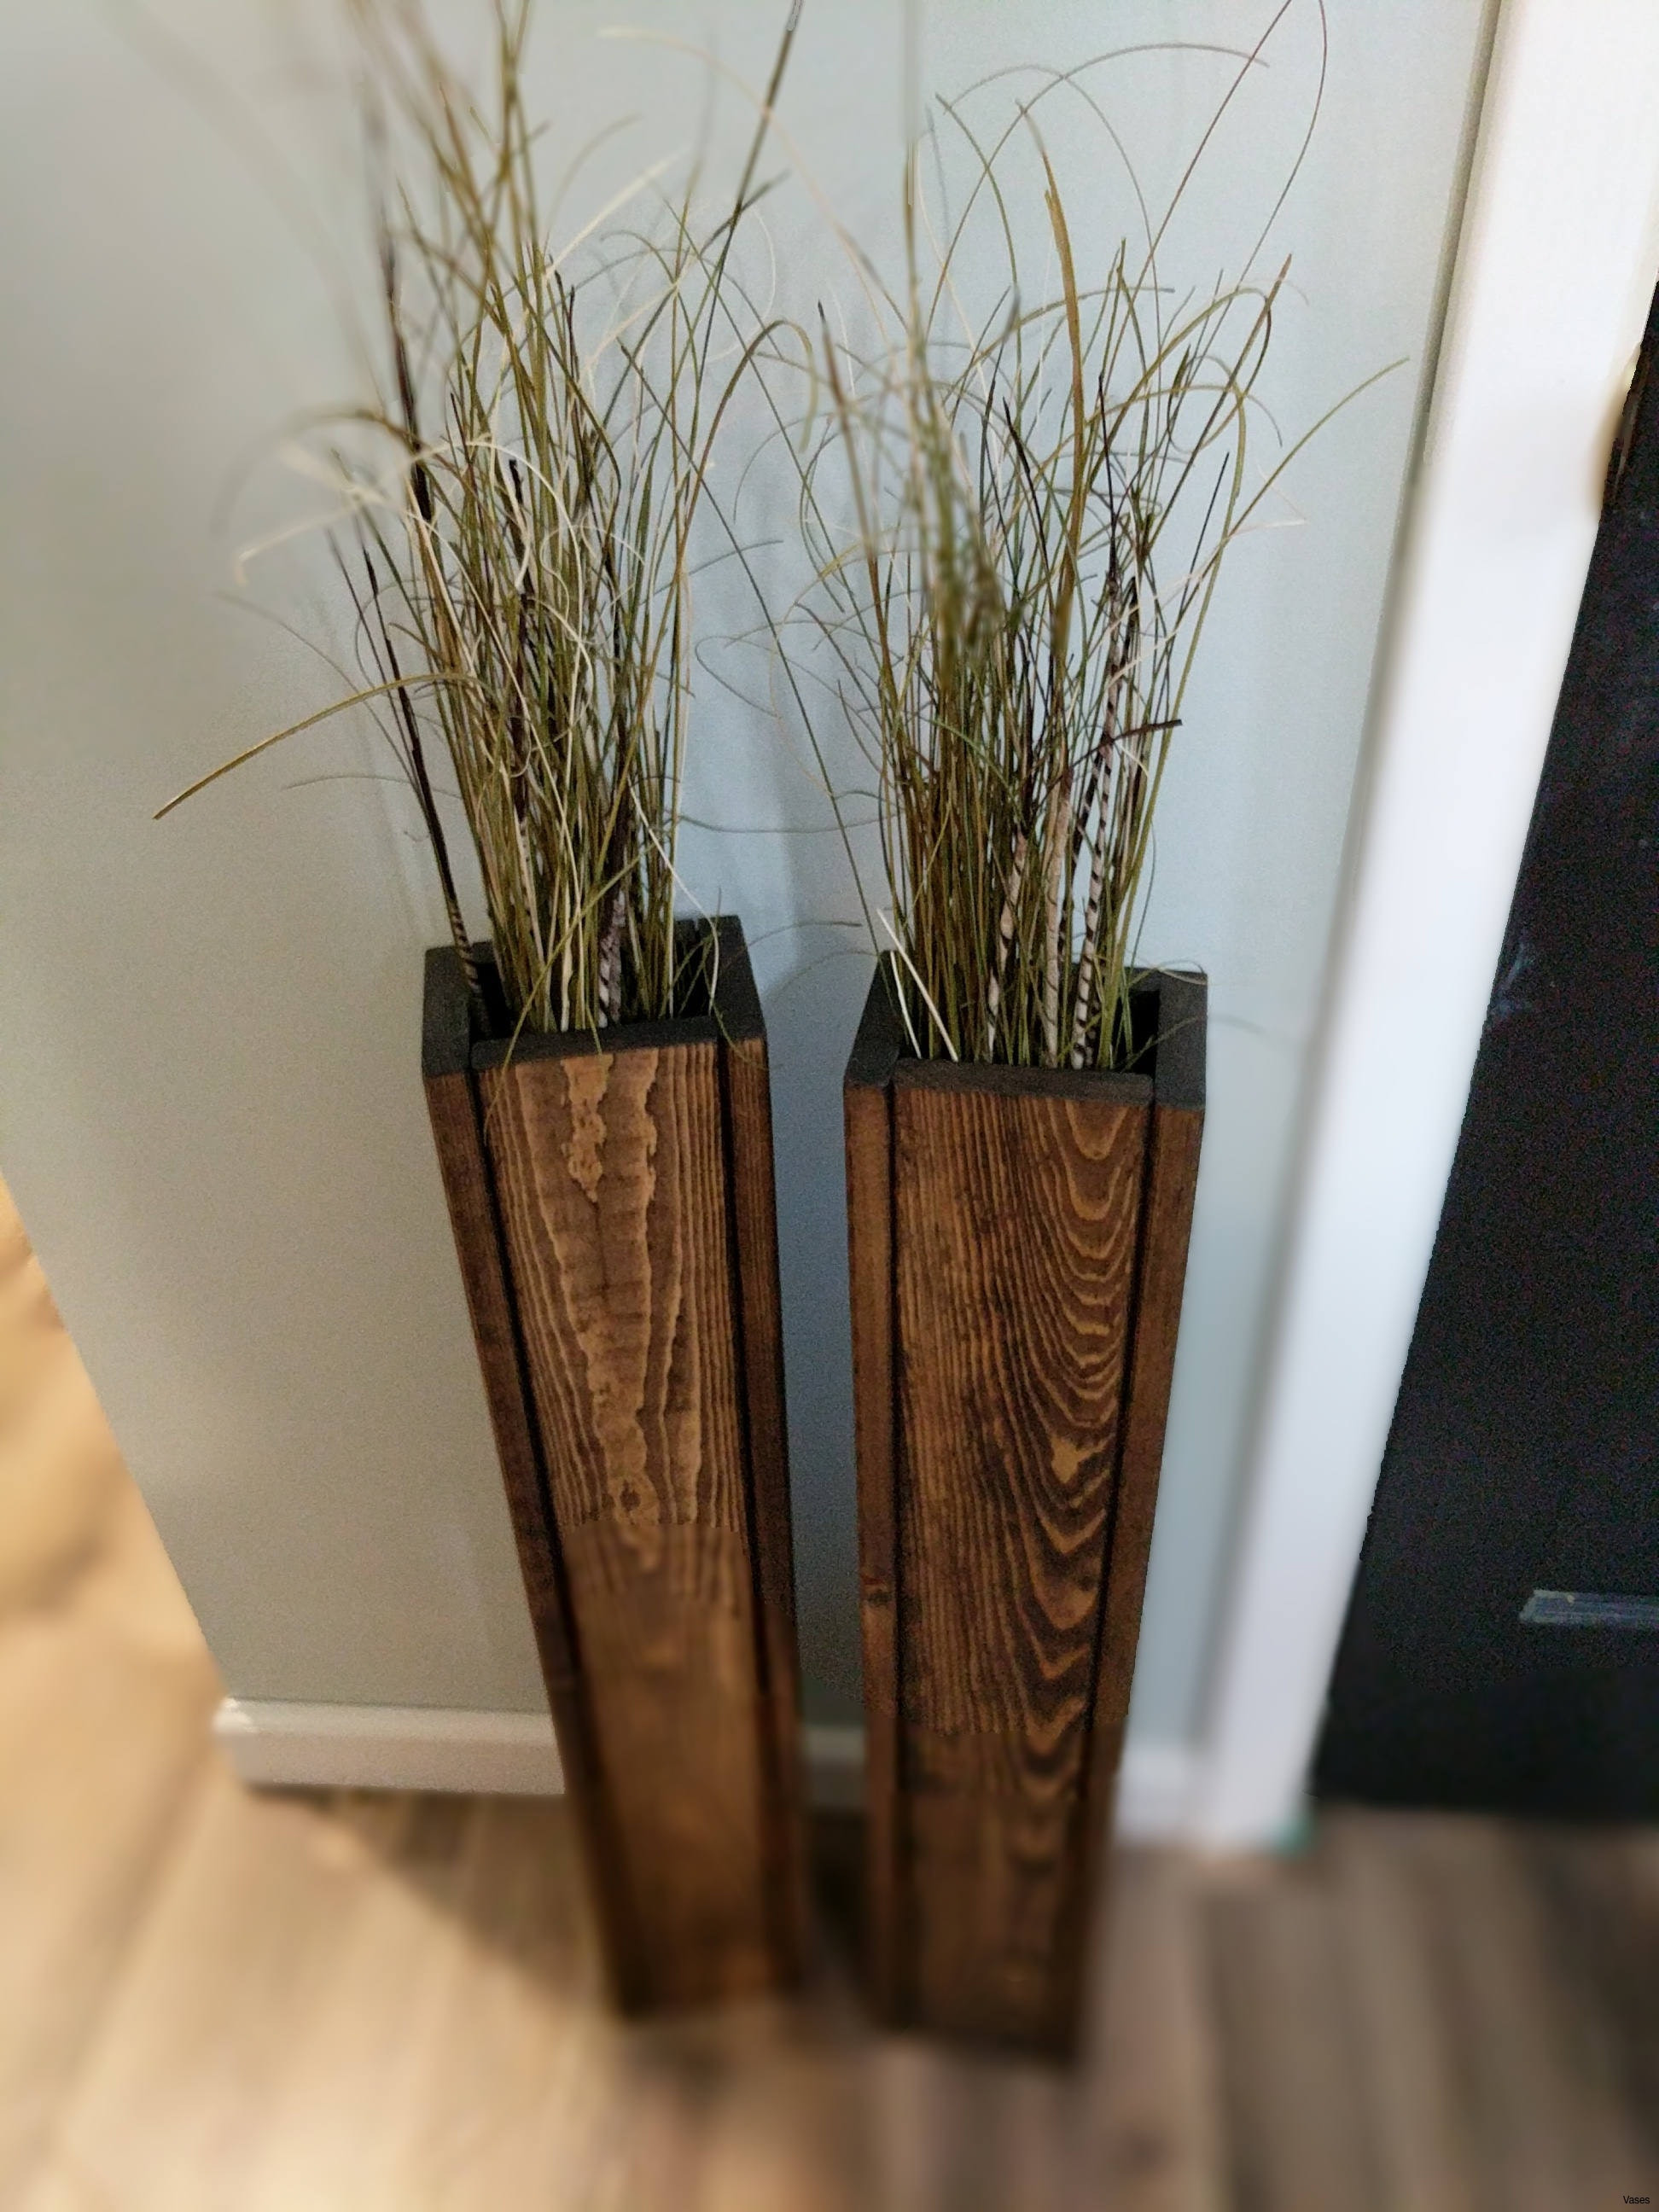 hobby lobby cemetery vases of red bamboo vases images vases vase with twigs red sticks in a i 0d regarding red bamboo vases images vases vase with twigs red sticks in a i 0d floor and lights